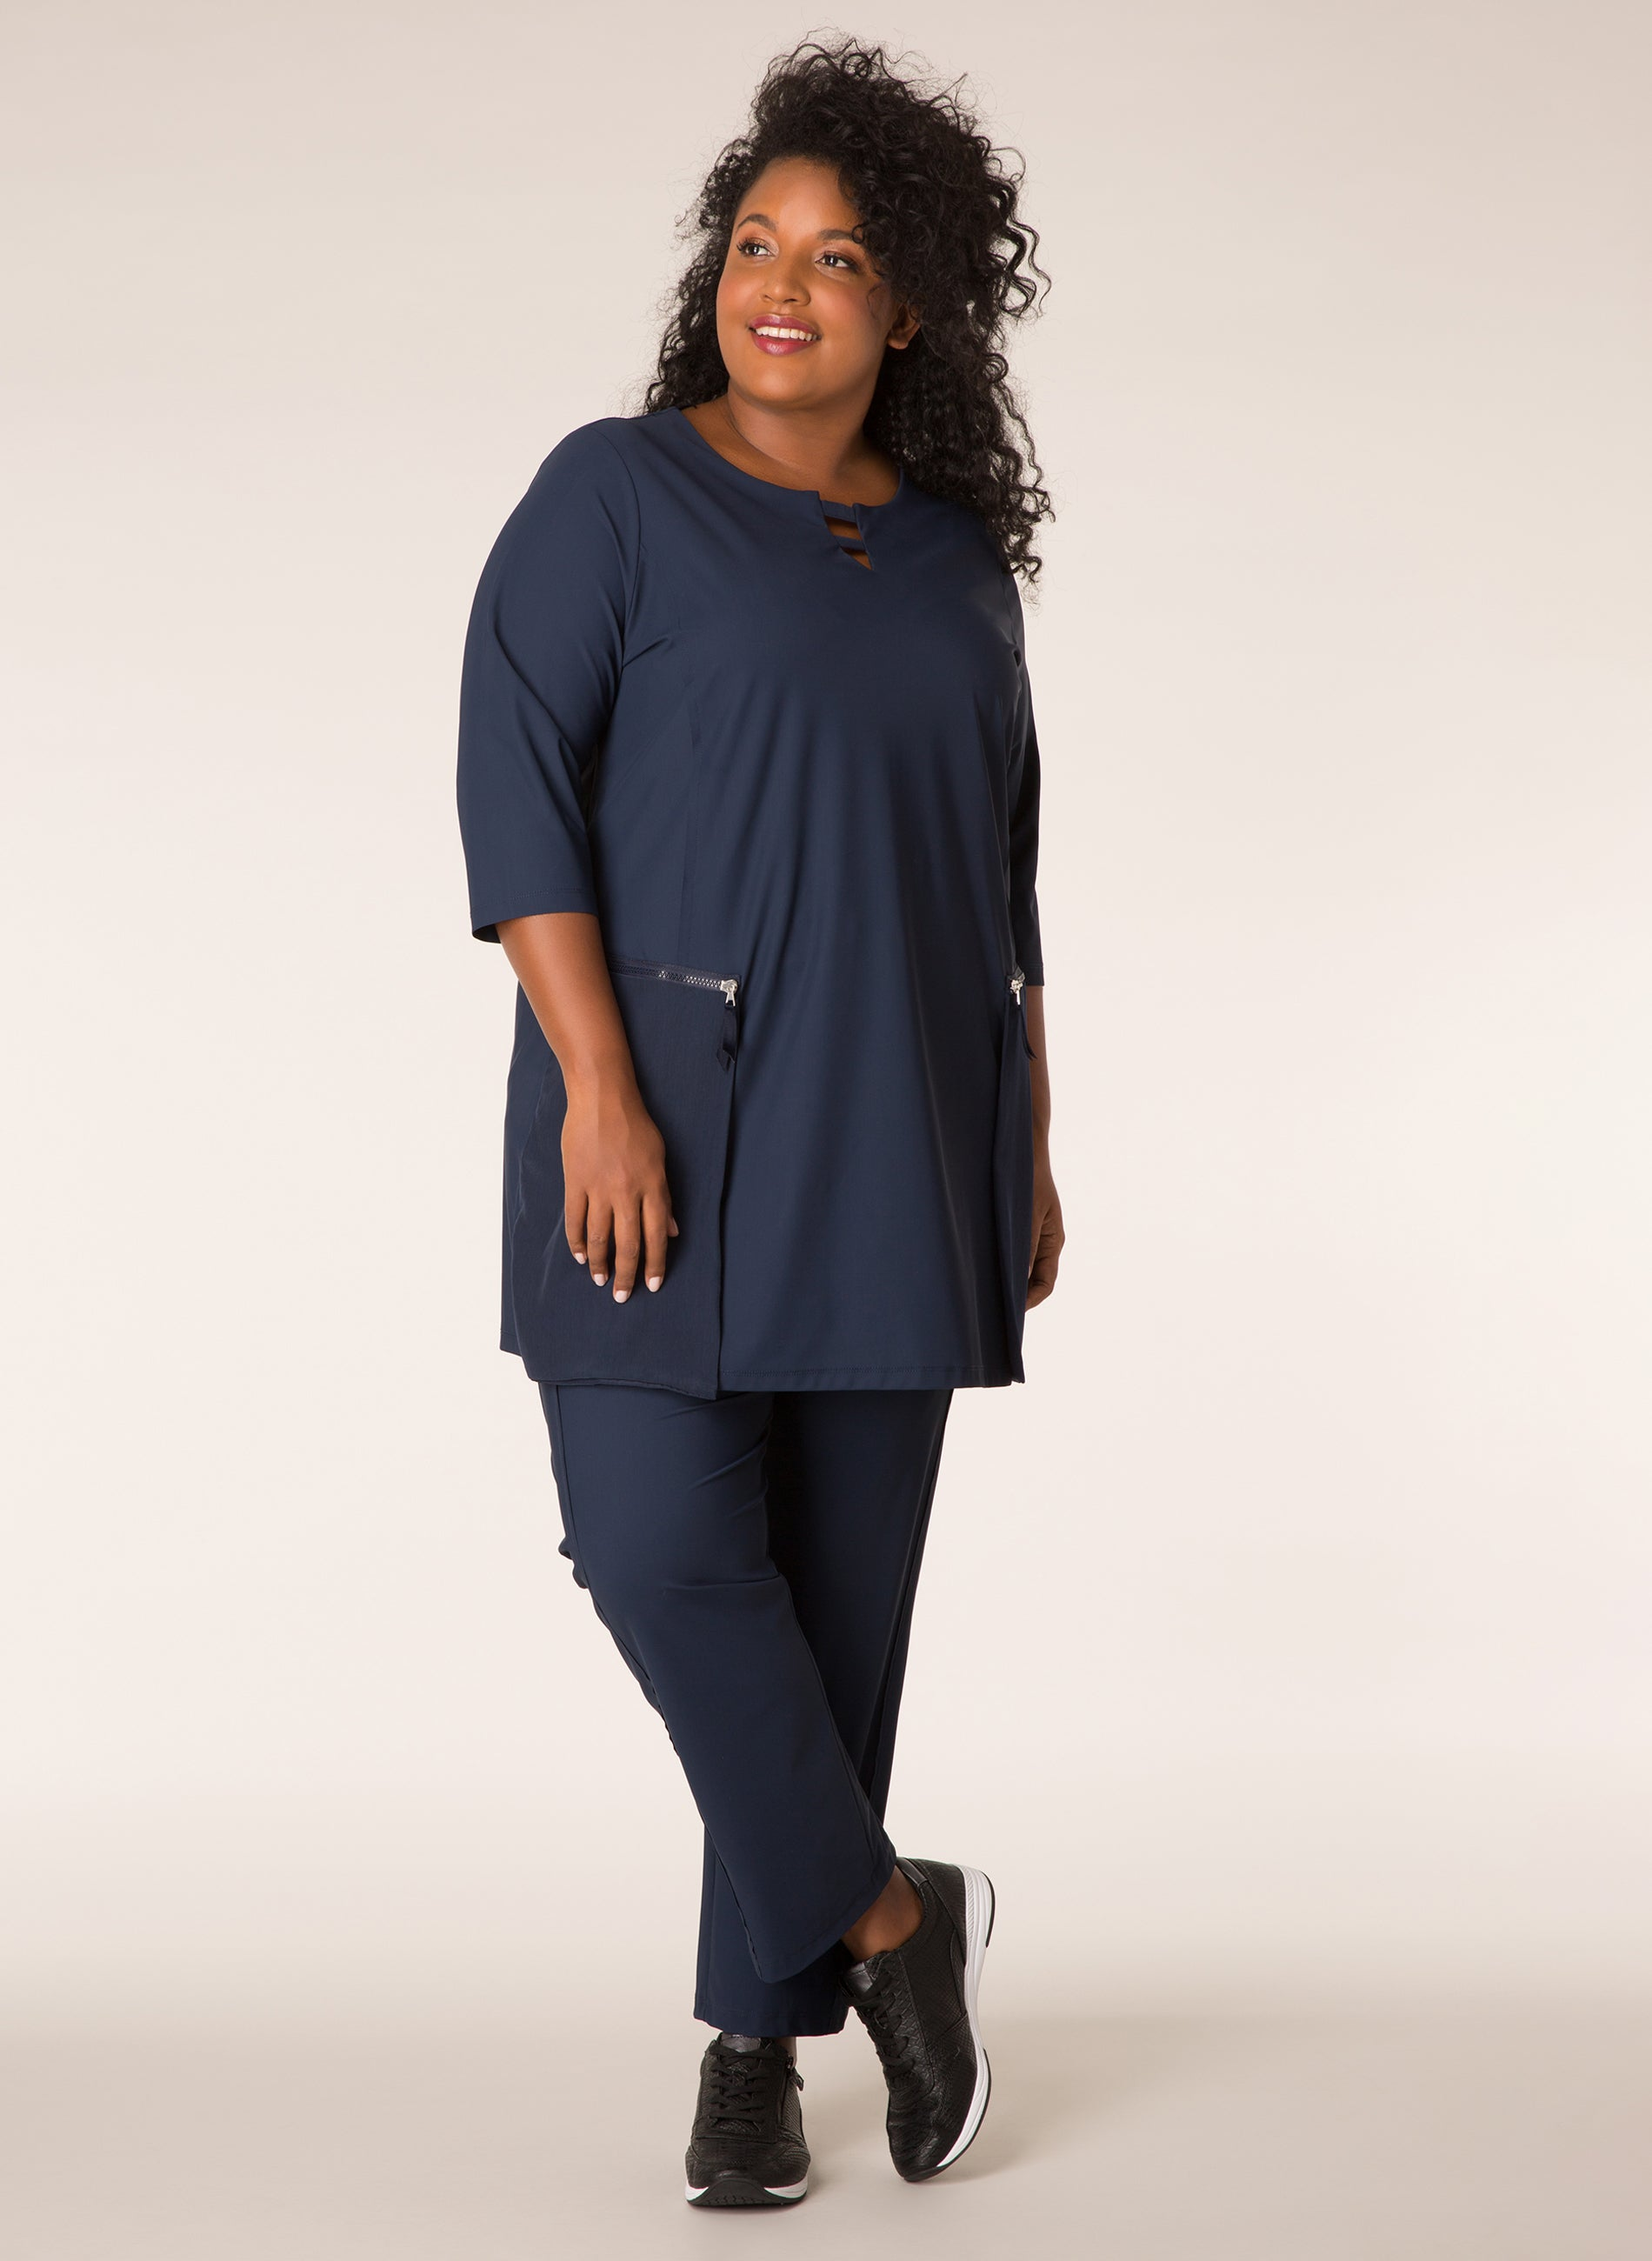 formexquise zara h&m yours clothing  grande  taille pour femme